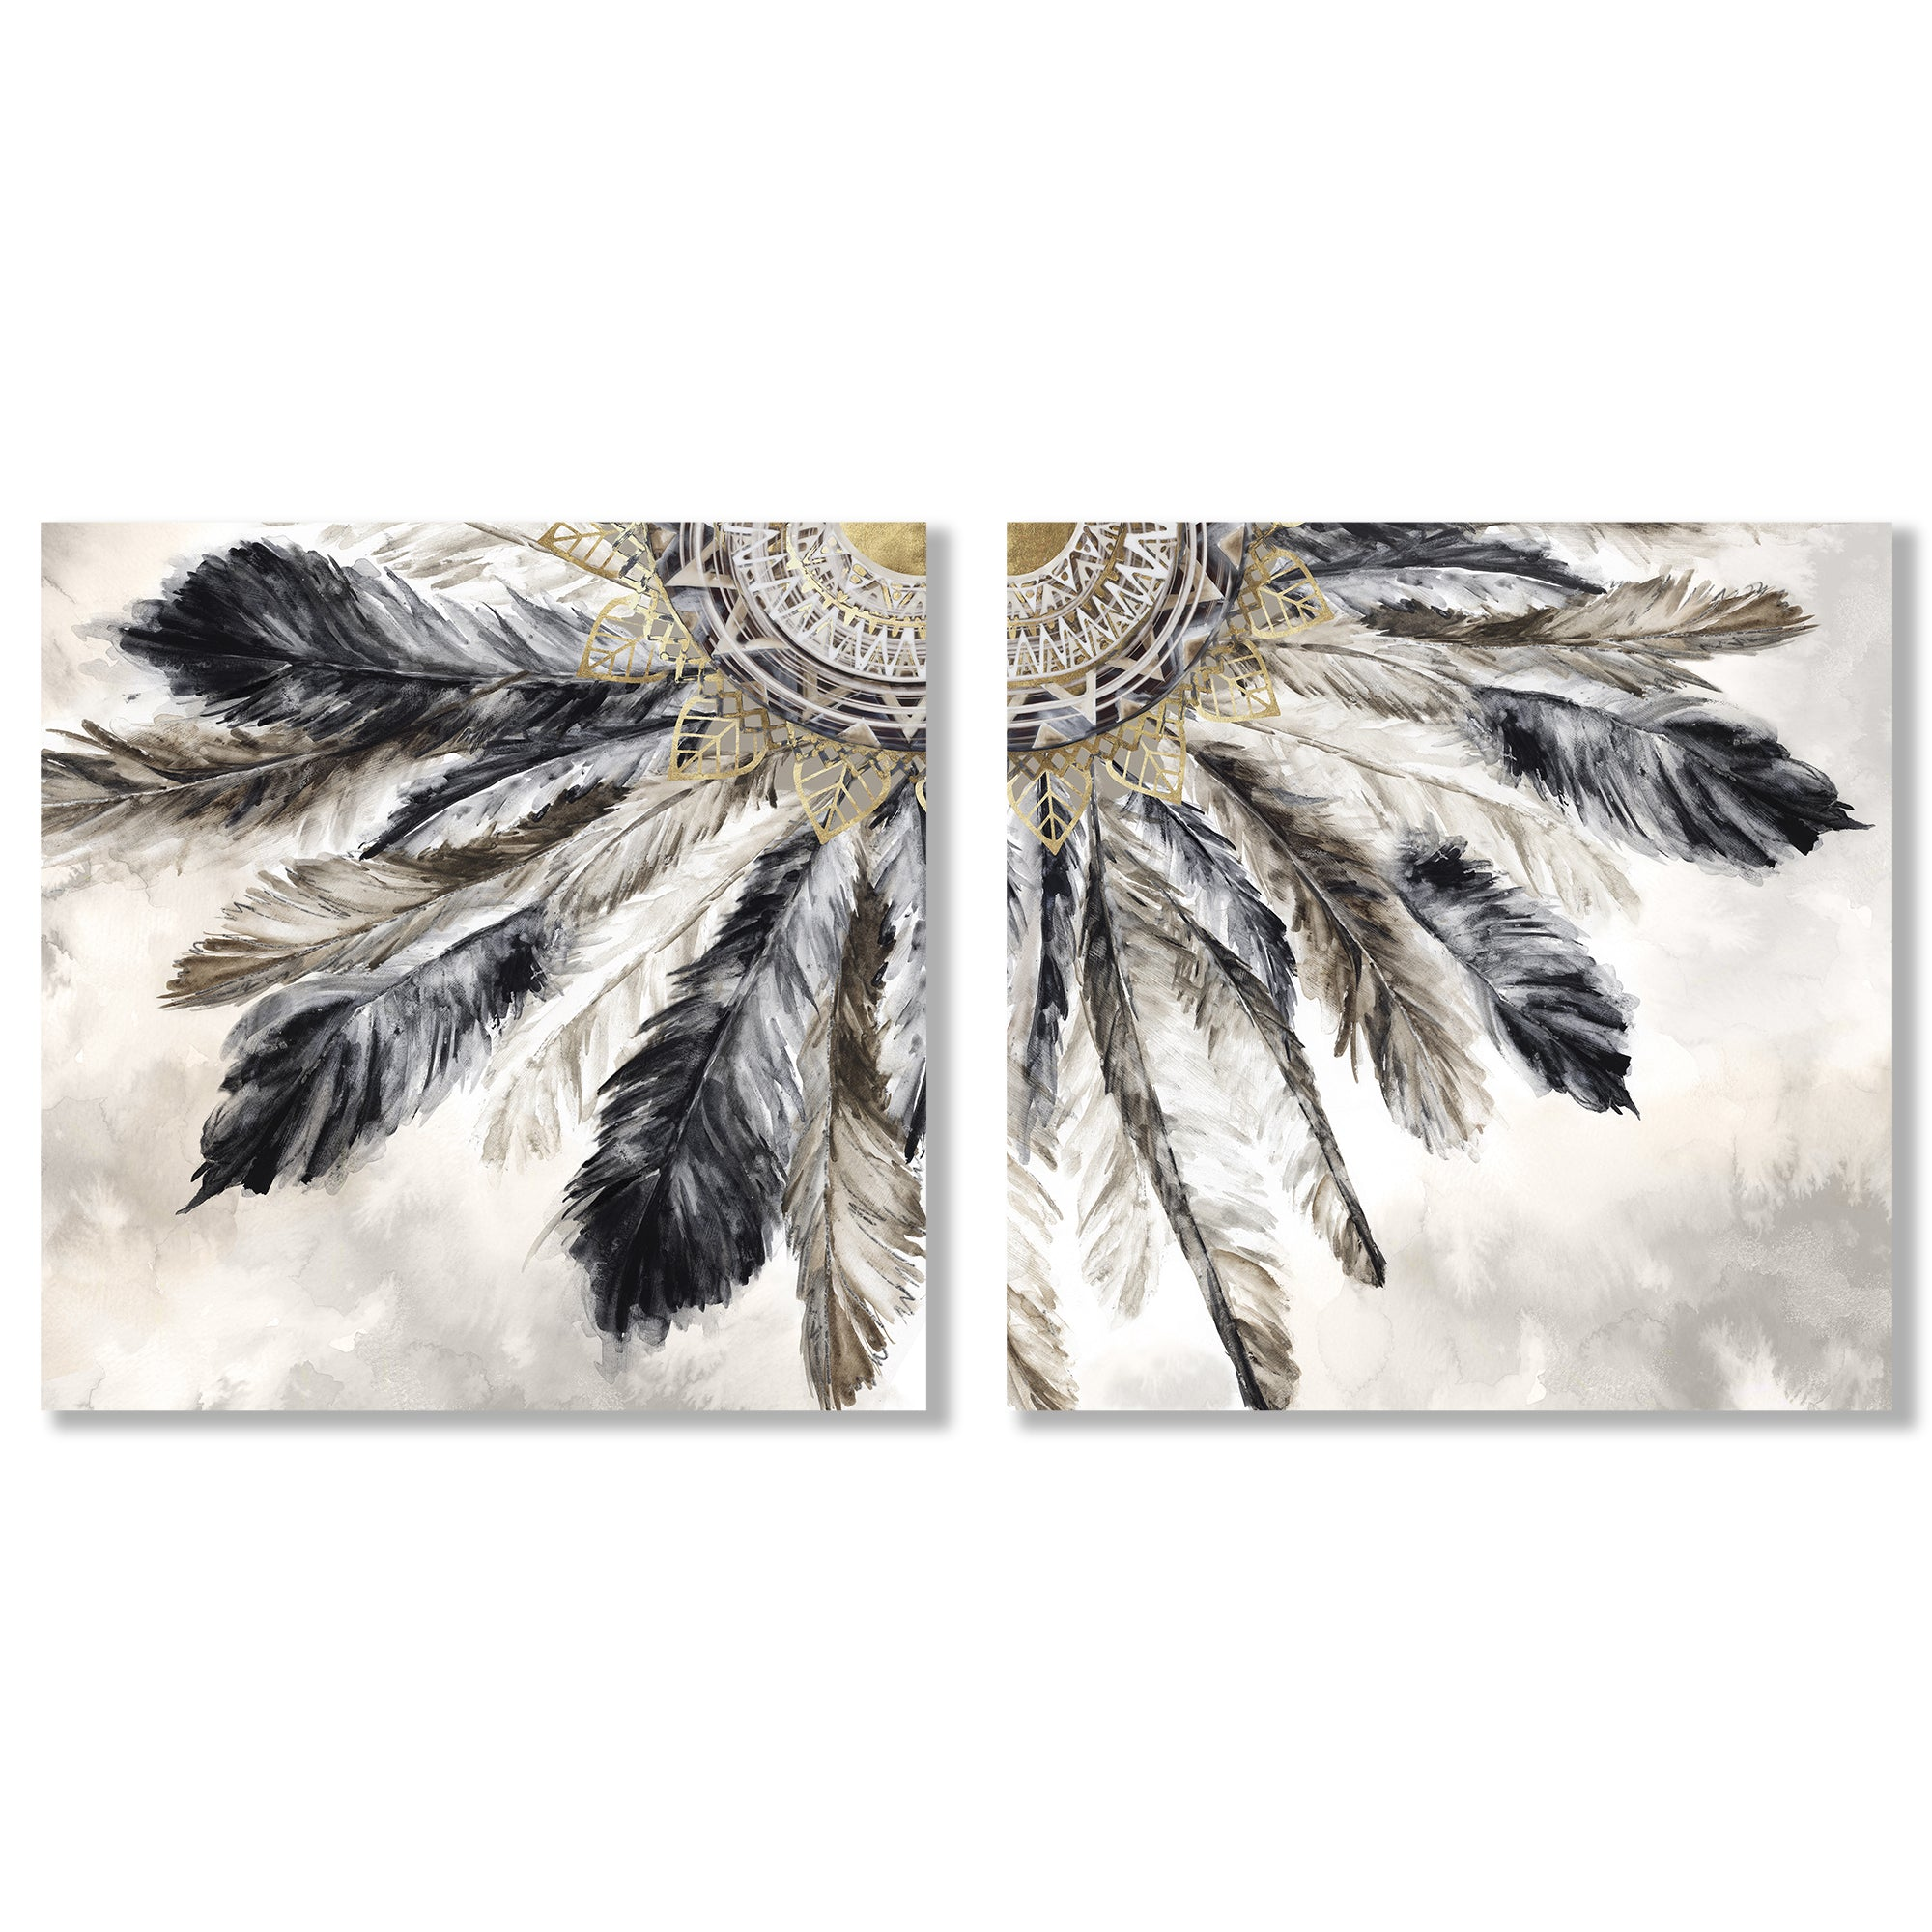 Necklace of Feathers by PI Creative Art - 2 Piece Gallery Wrapped Canvas Set - Art Set - Americanflat